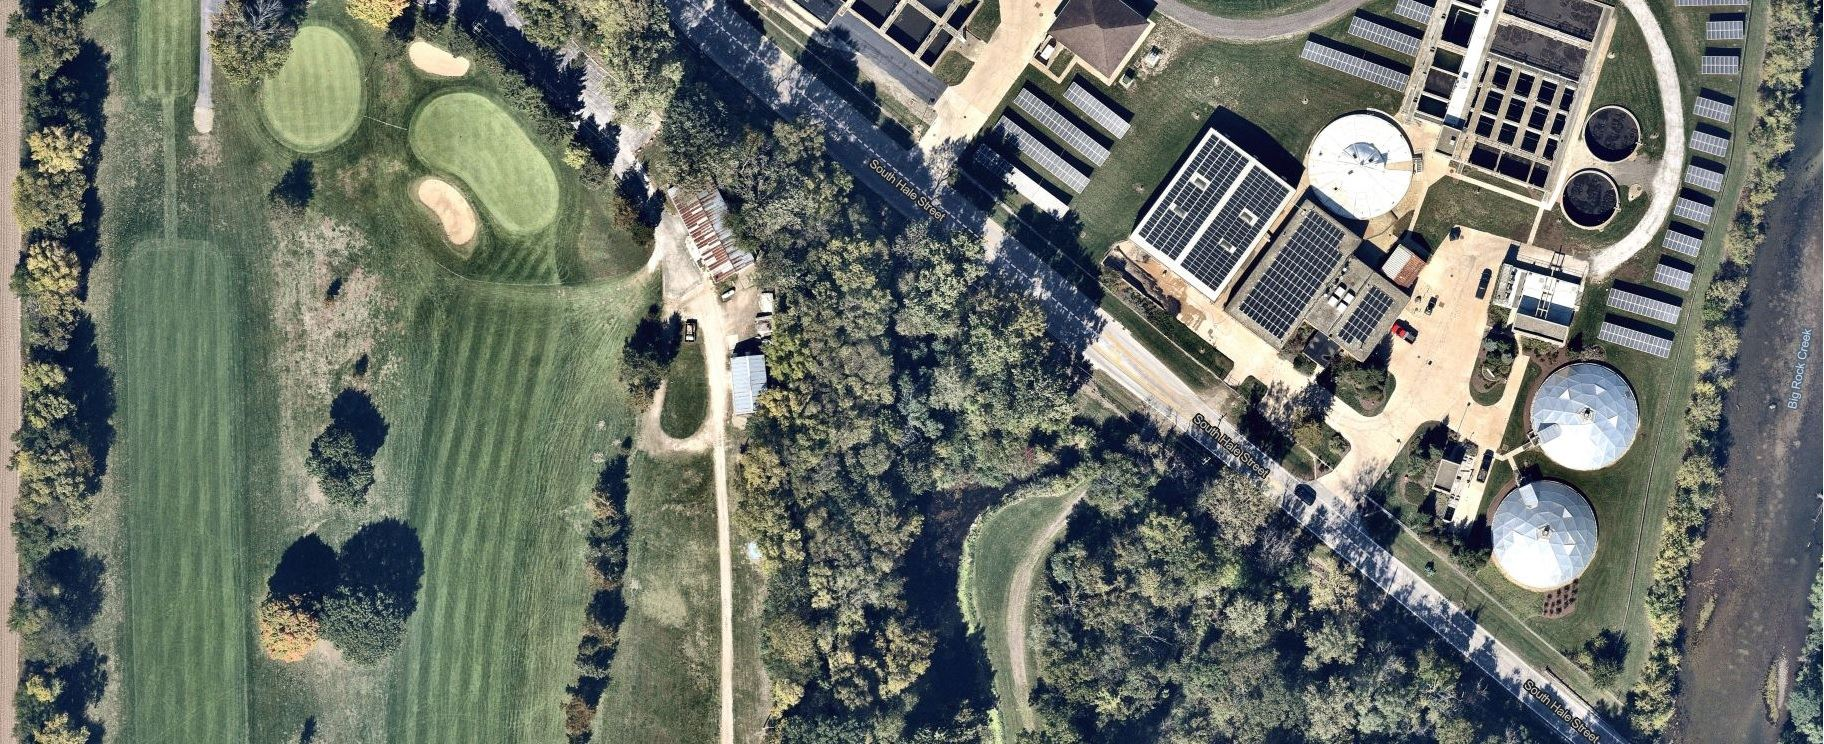 00 - Golf Course Aerial 23